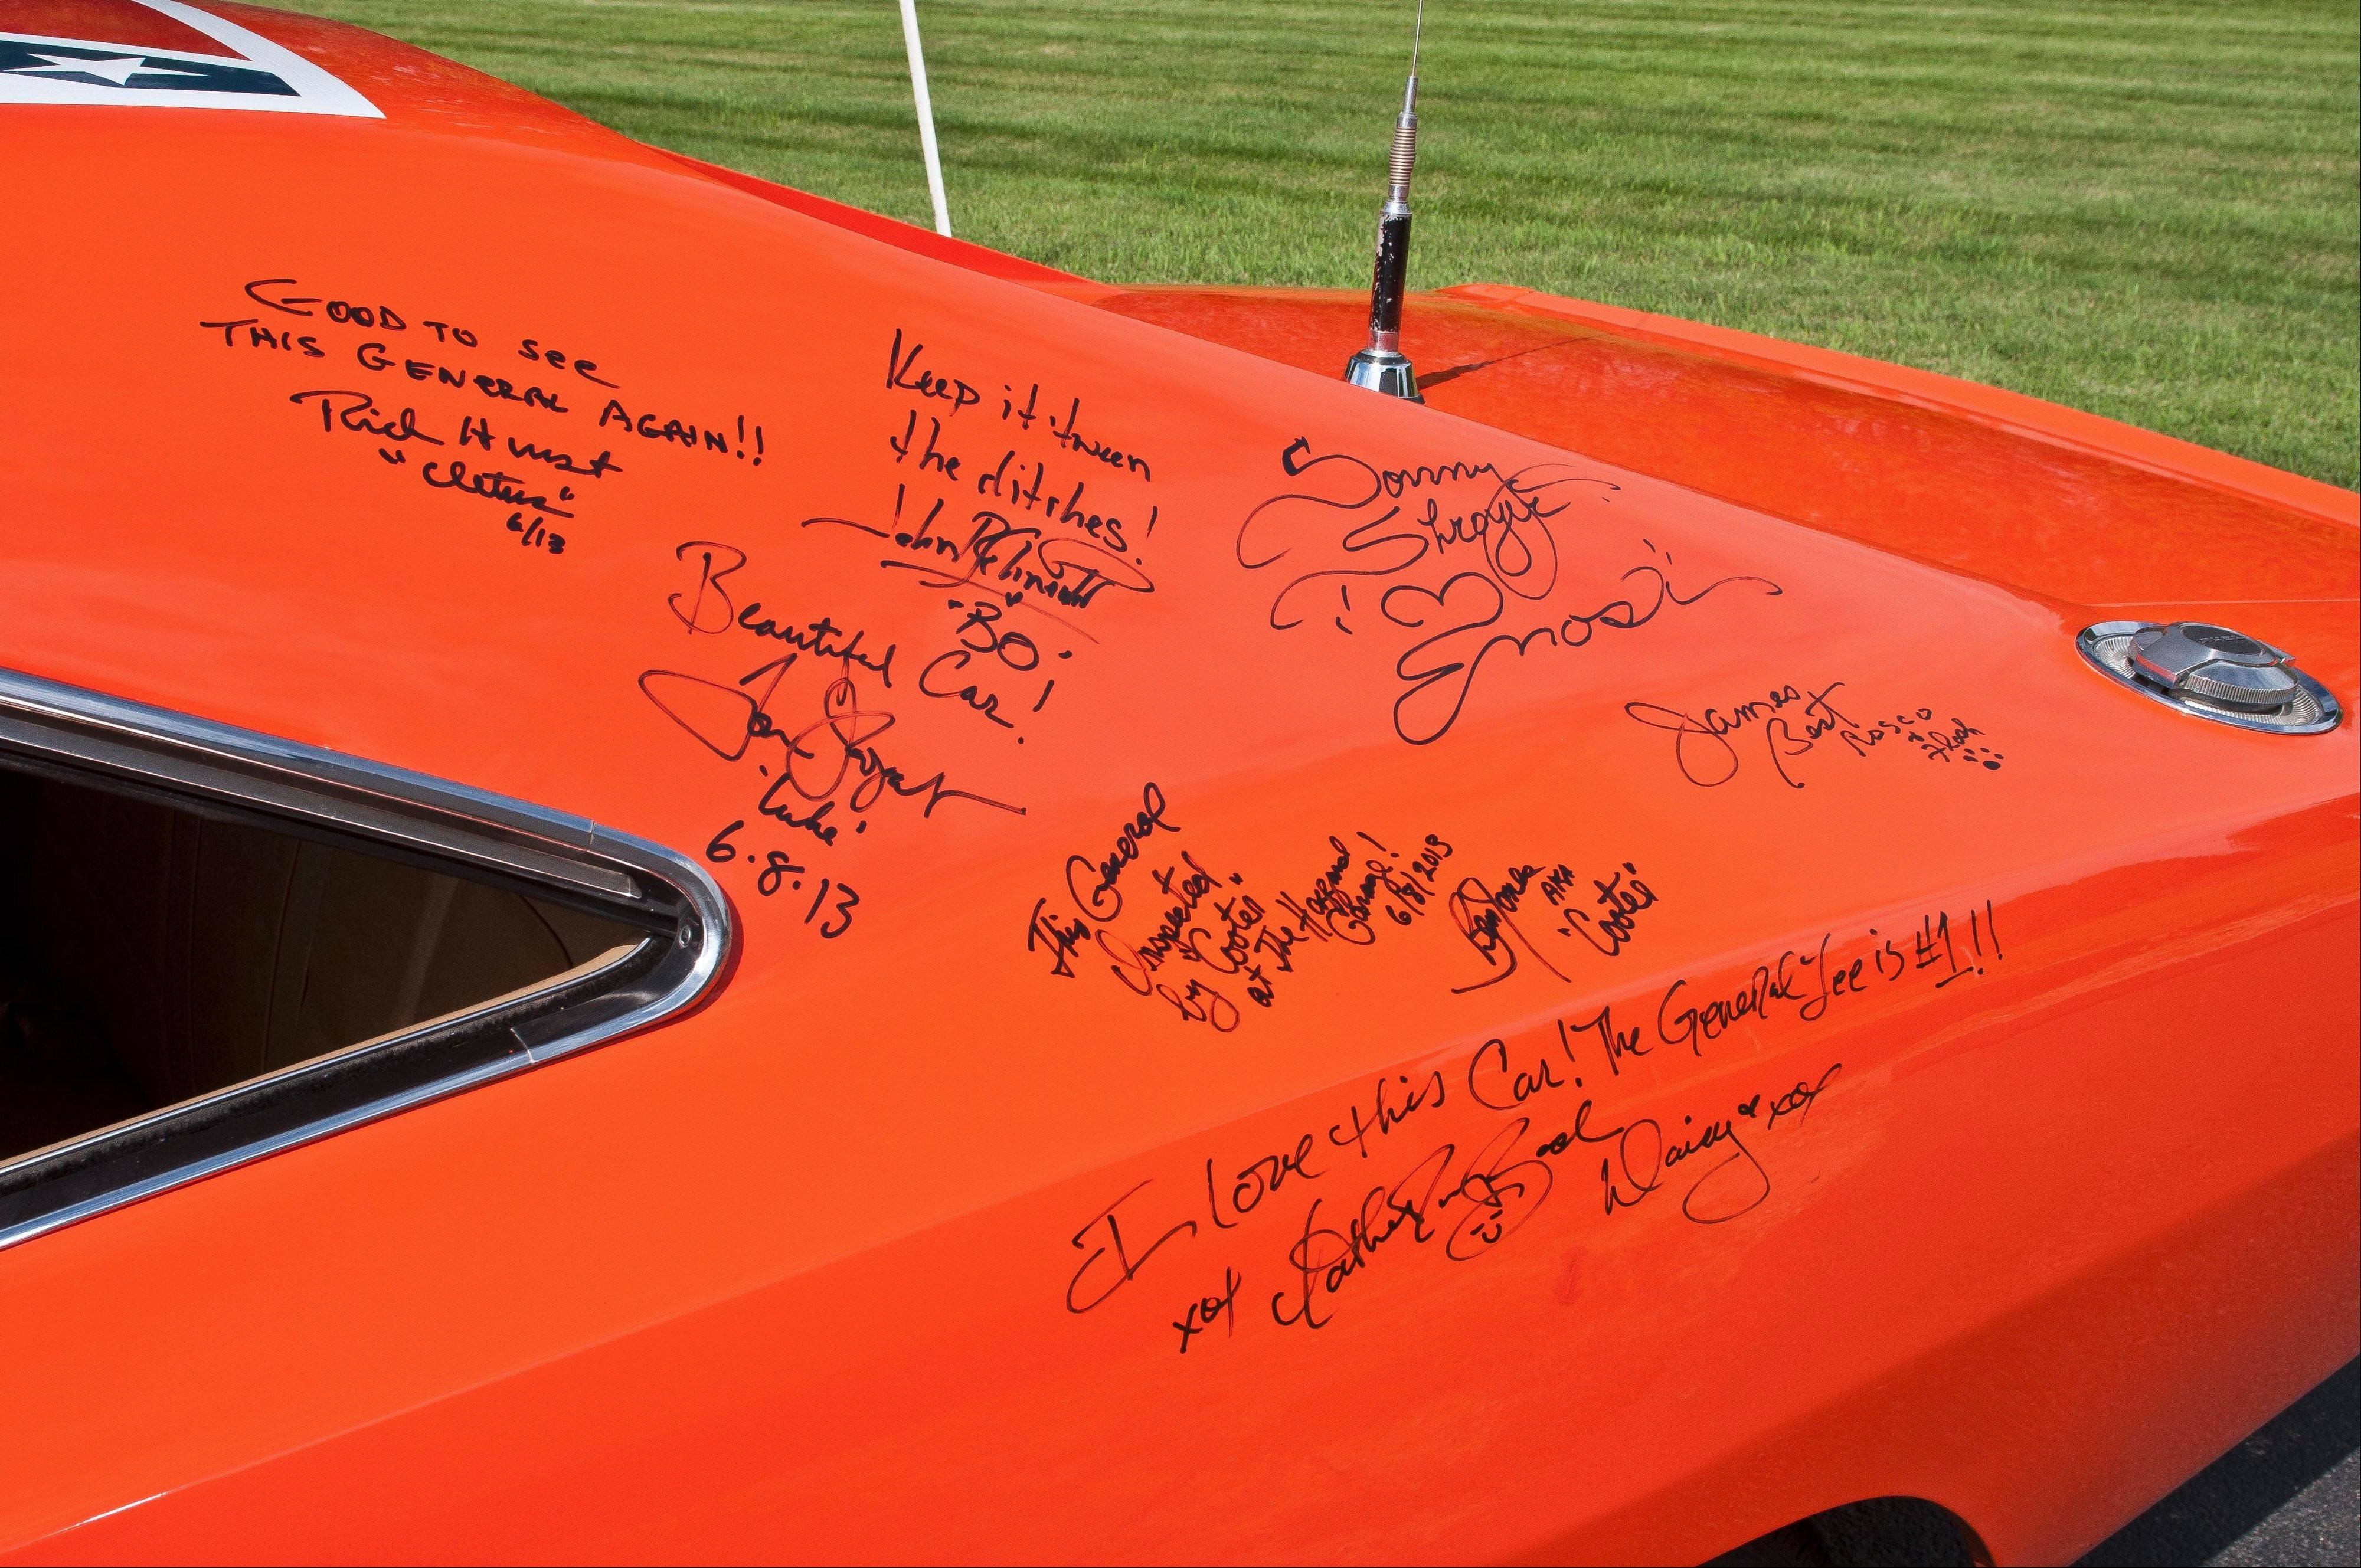 The surviving cast members appeared at a recent fan convention in Nashville, Tenn., and signed the Charger.